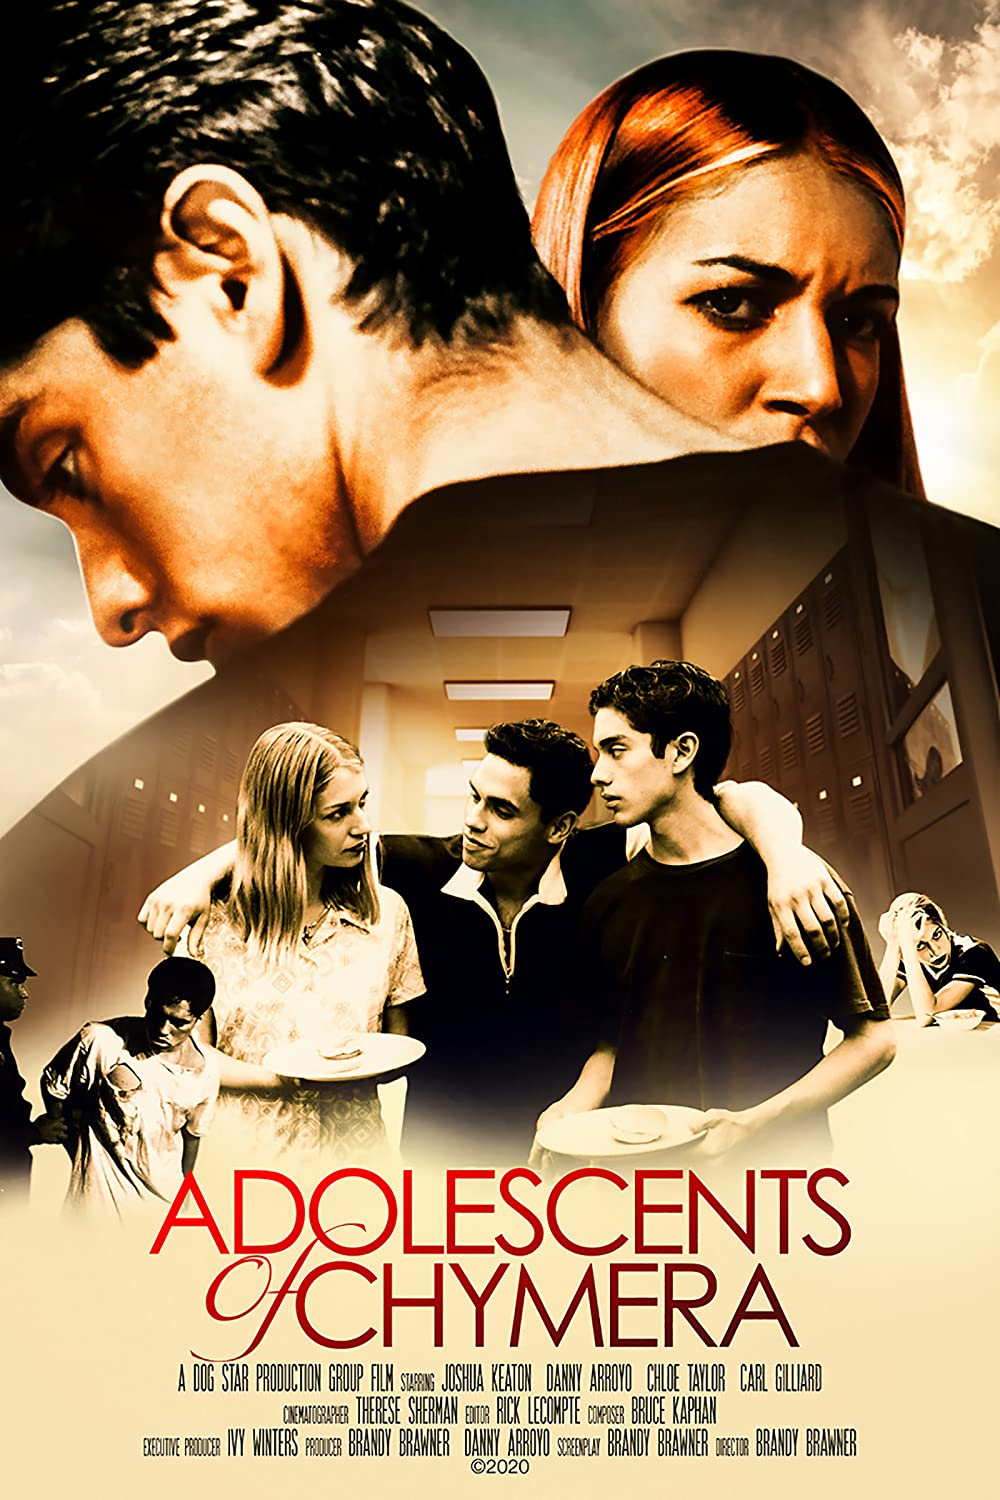 Adolescents of Chymera 2021 English 1080p | 720p | 250MB HDRip ESub 1.2GB | 796MB Download